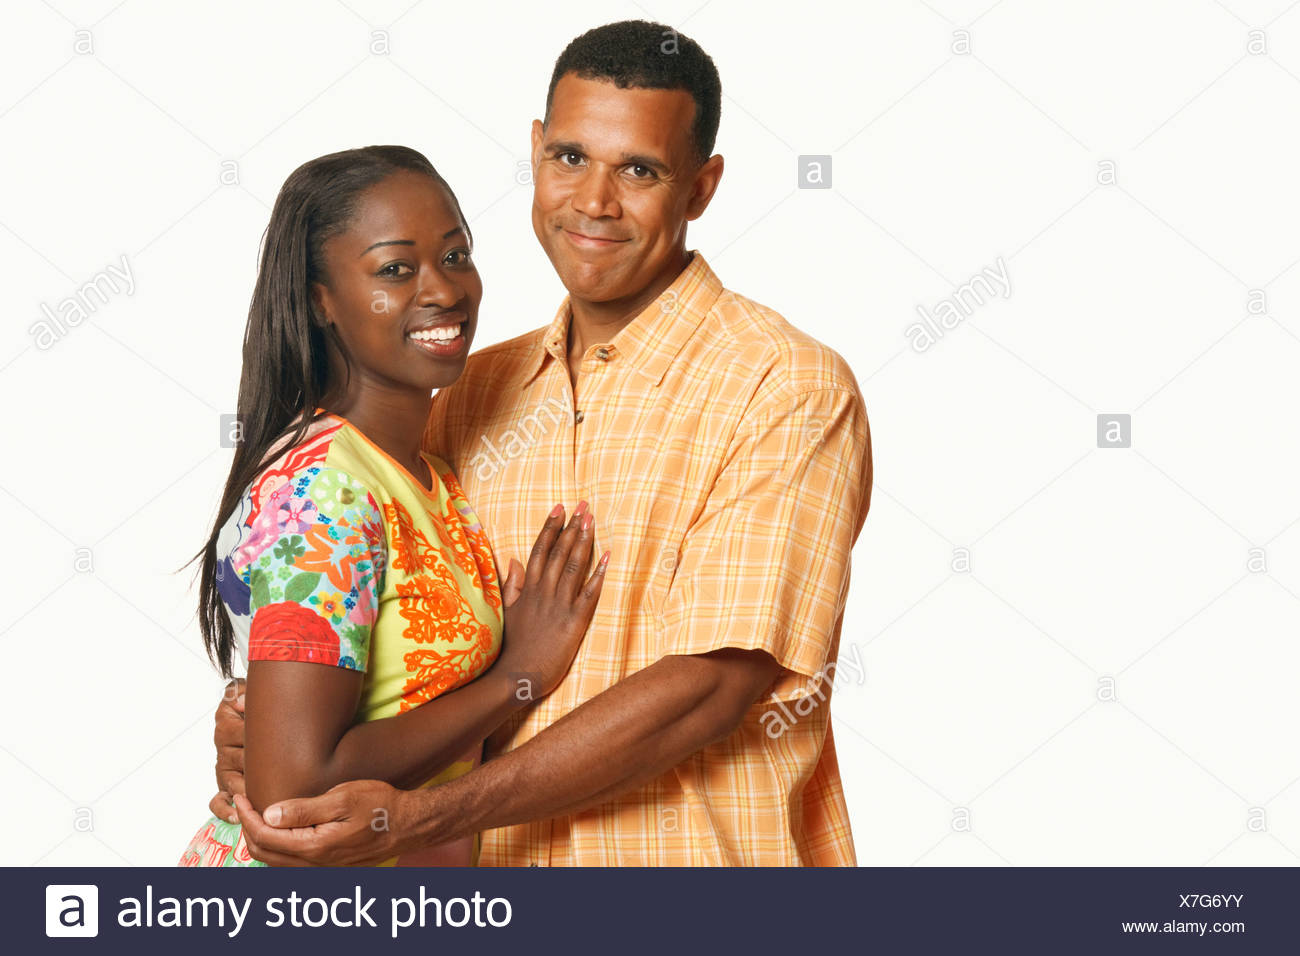 Portrait of a mature man embracing a mid adult woman and smiling - Stock Image